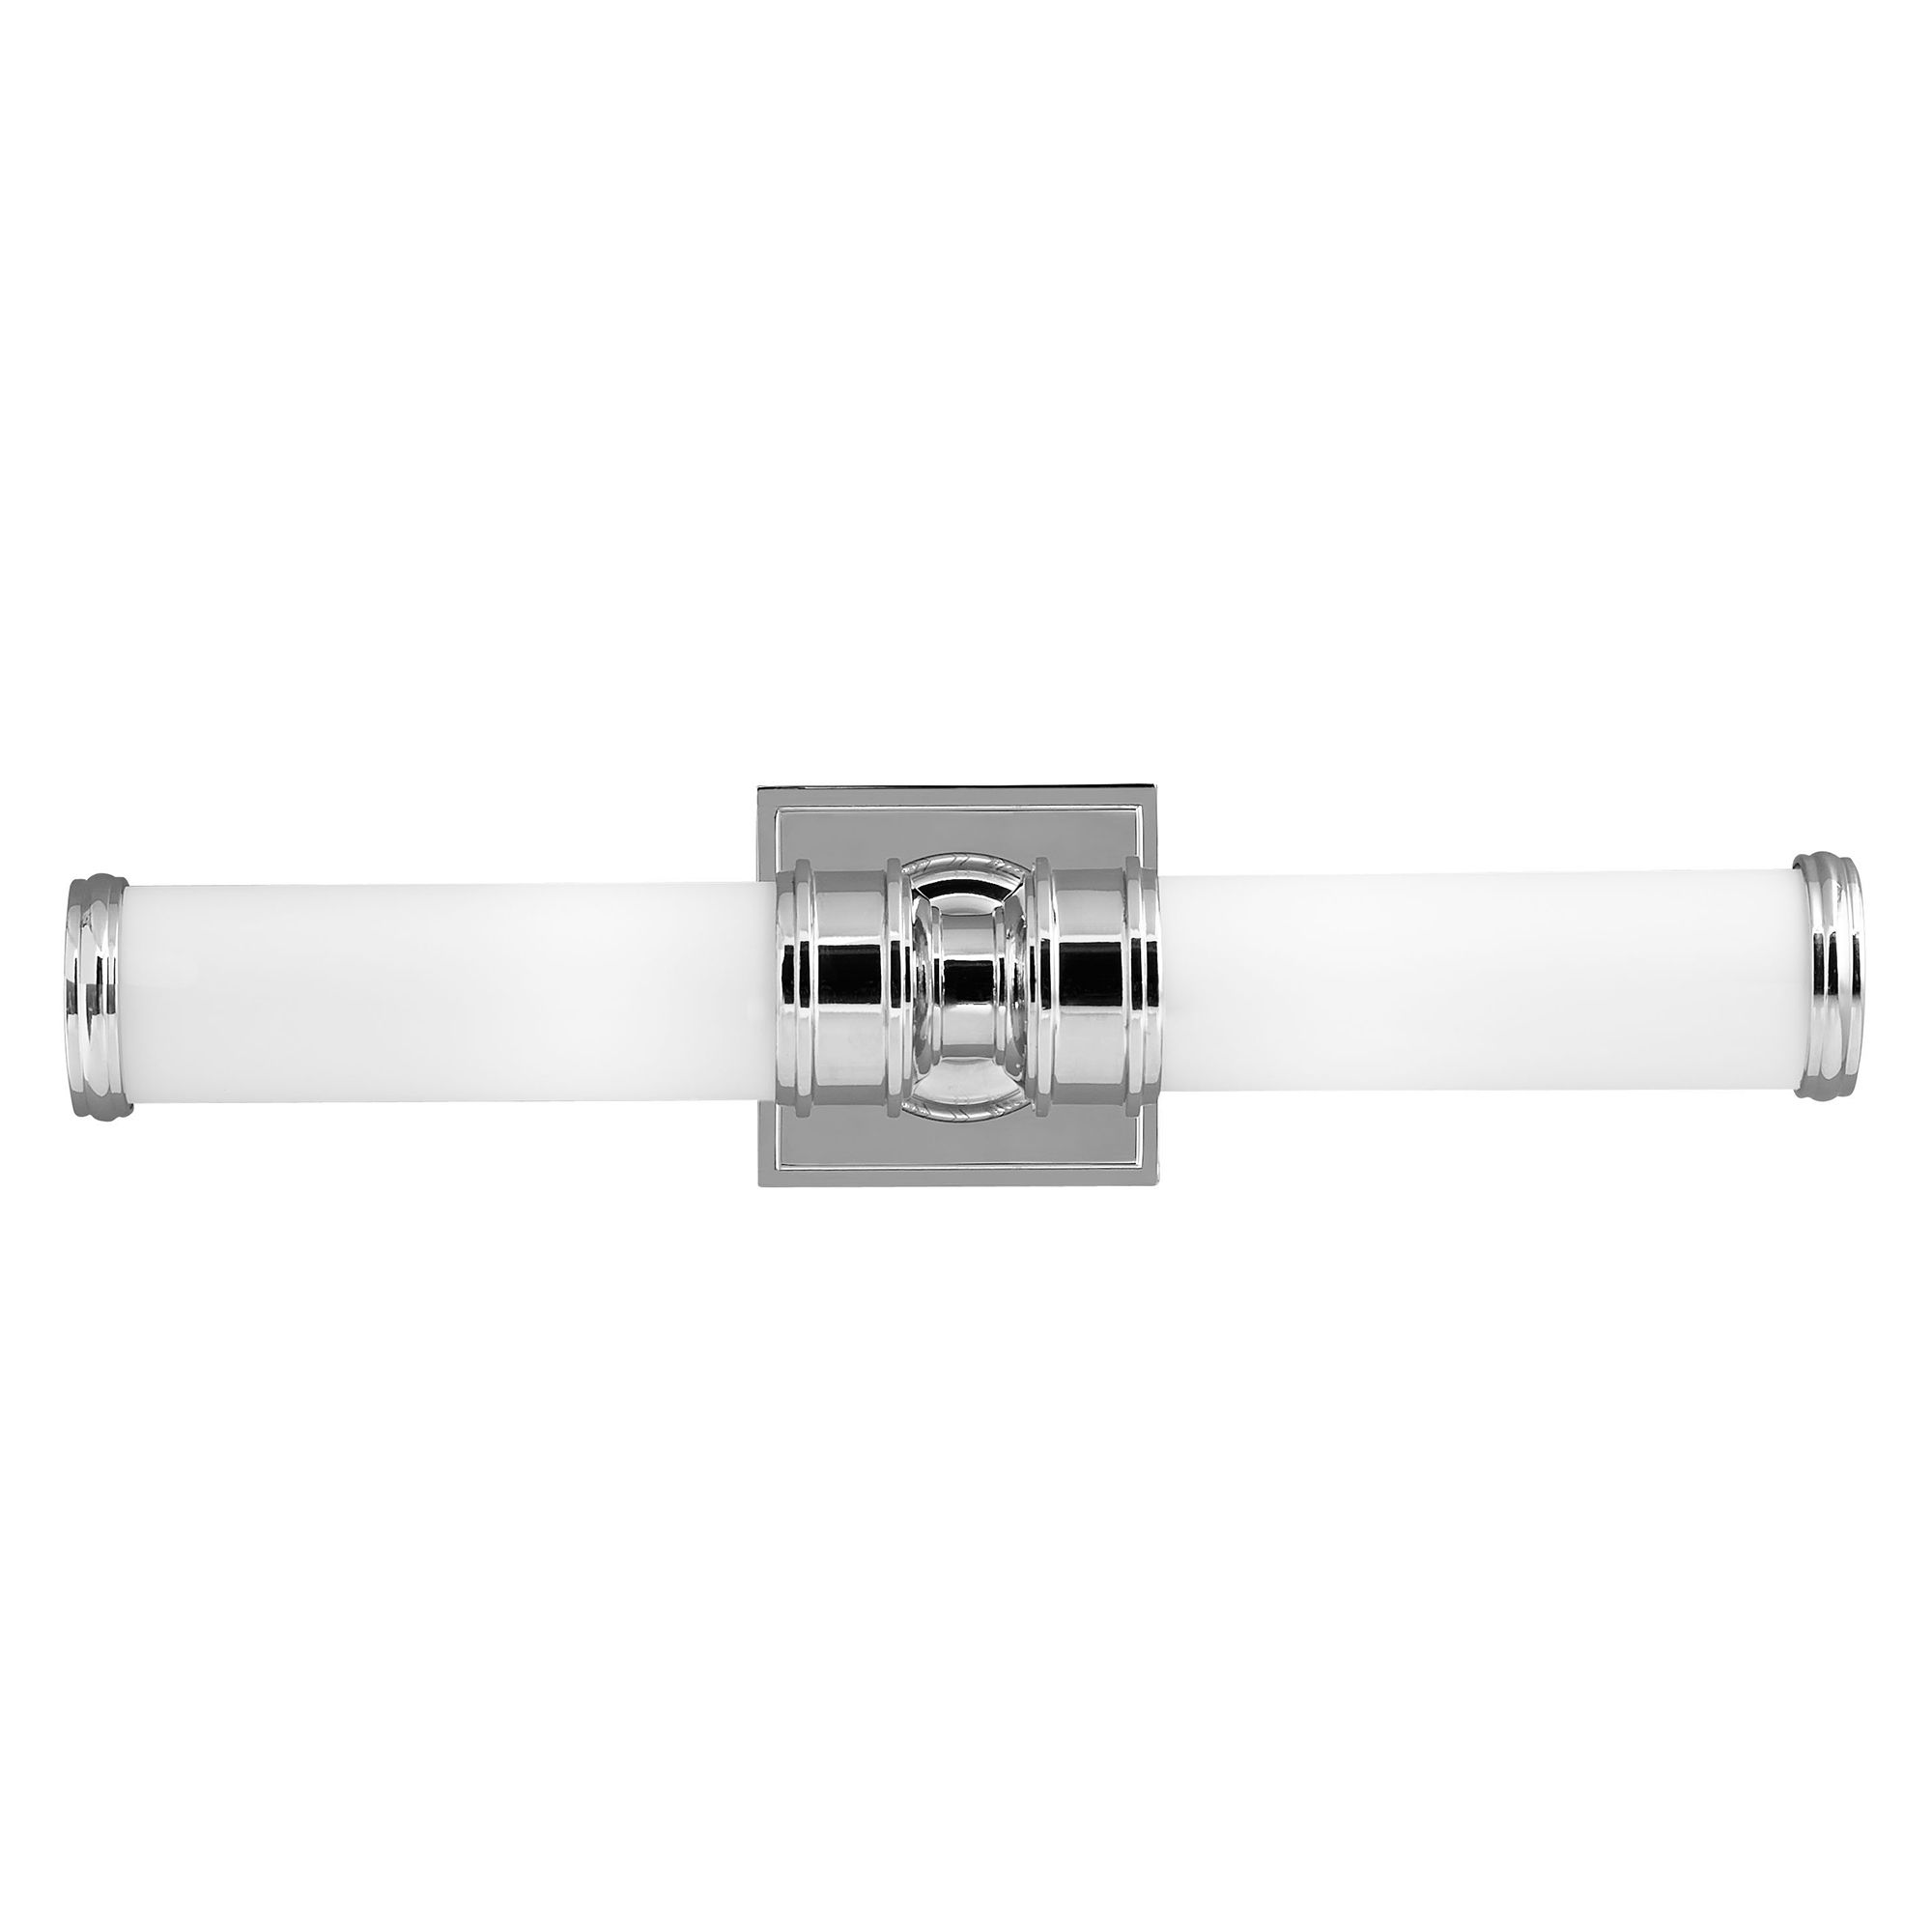 Payne double bathroom mirror wall light in polished chrome with opal etched glass shades ip44 Polished chrome bathroom mirrors